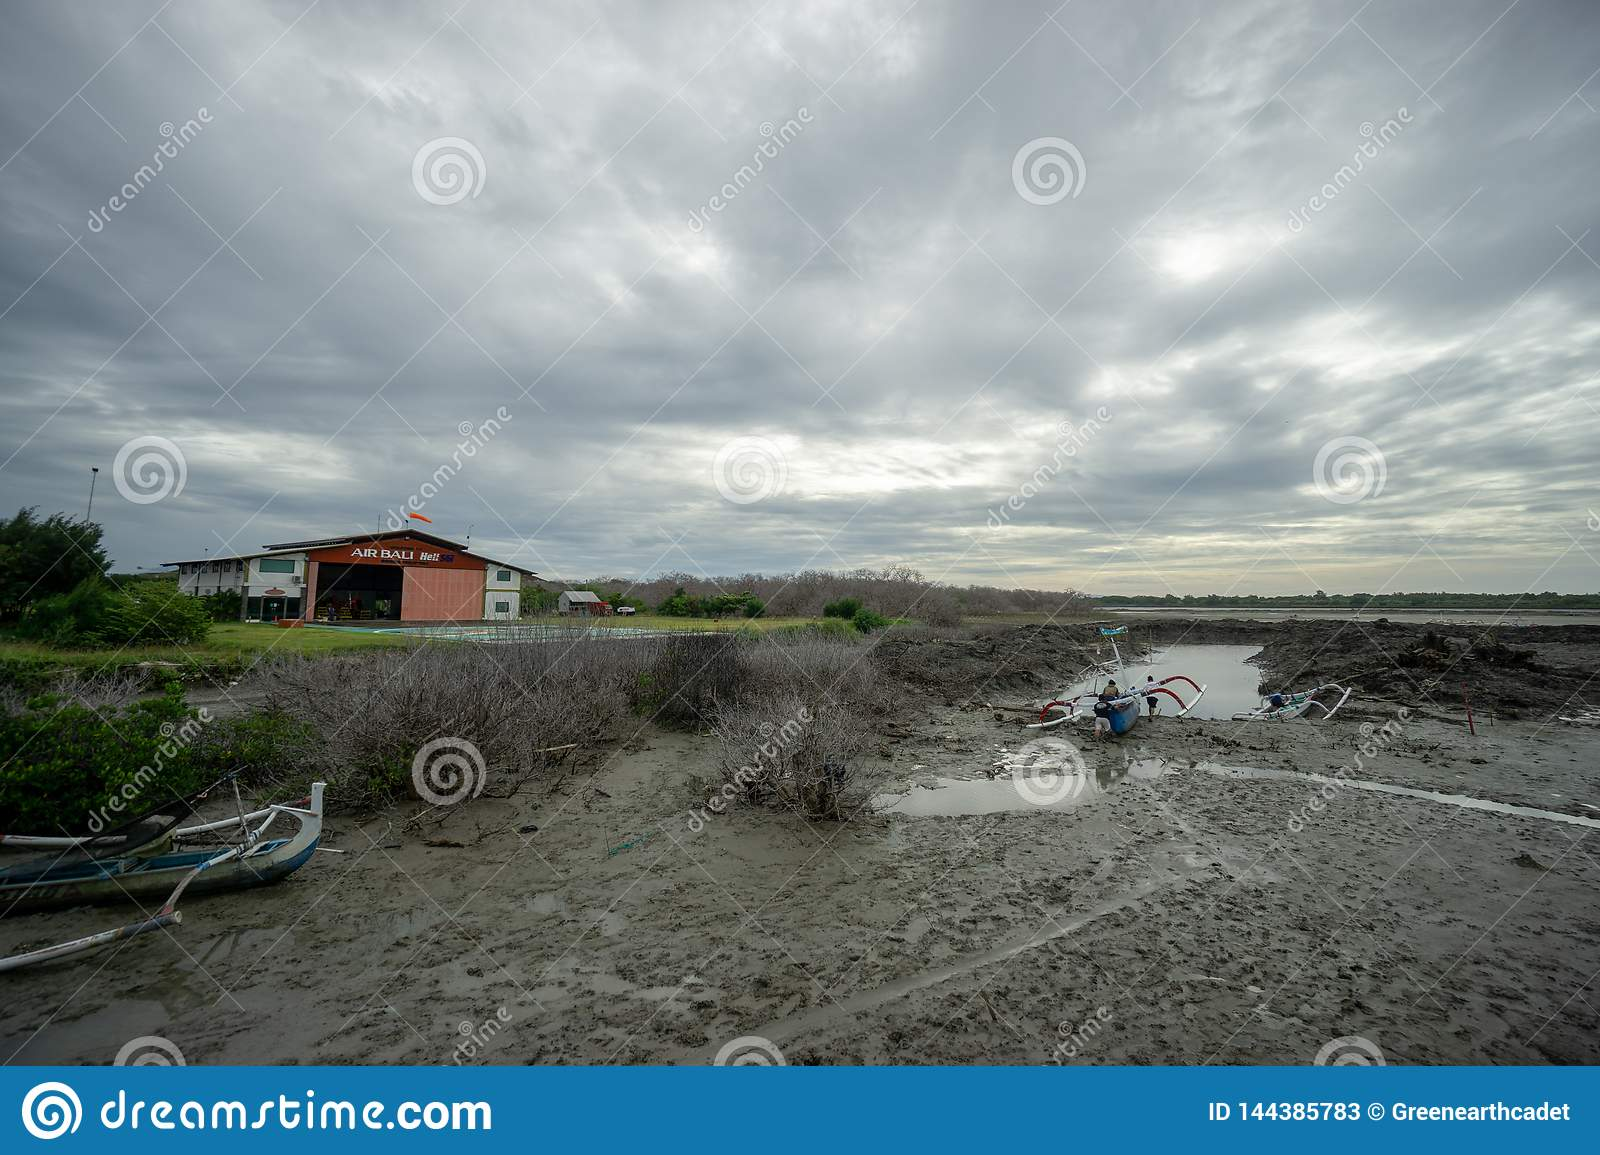 BADUNG,BALI/INDONESIA-MARCH 8 2019: Fisherman boat stuck on the mud because of low tide in Benoa